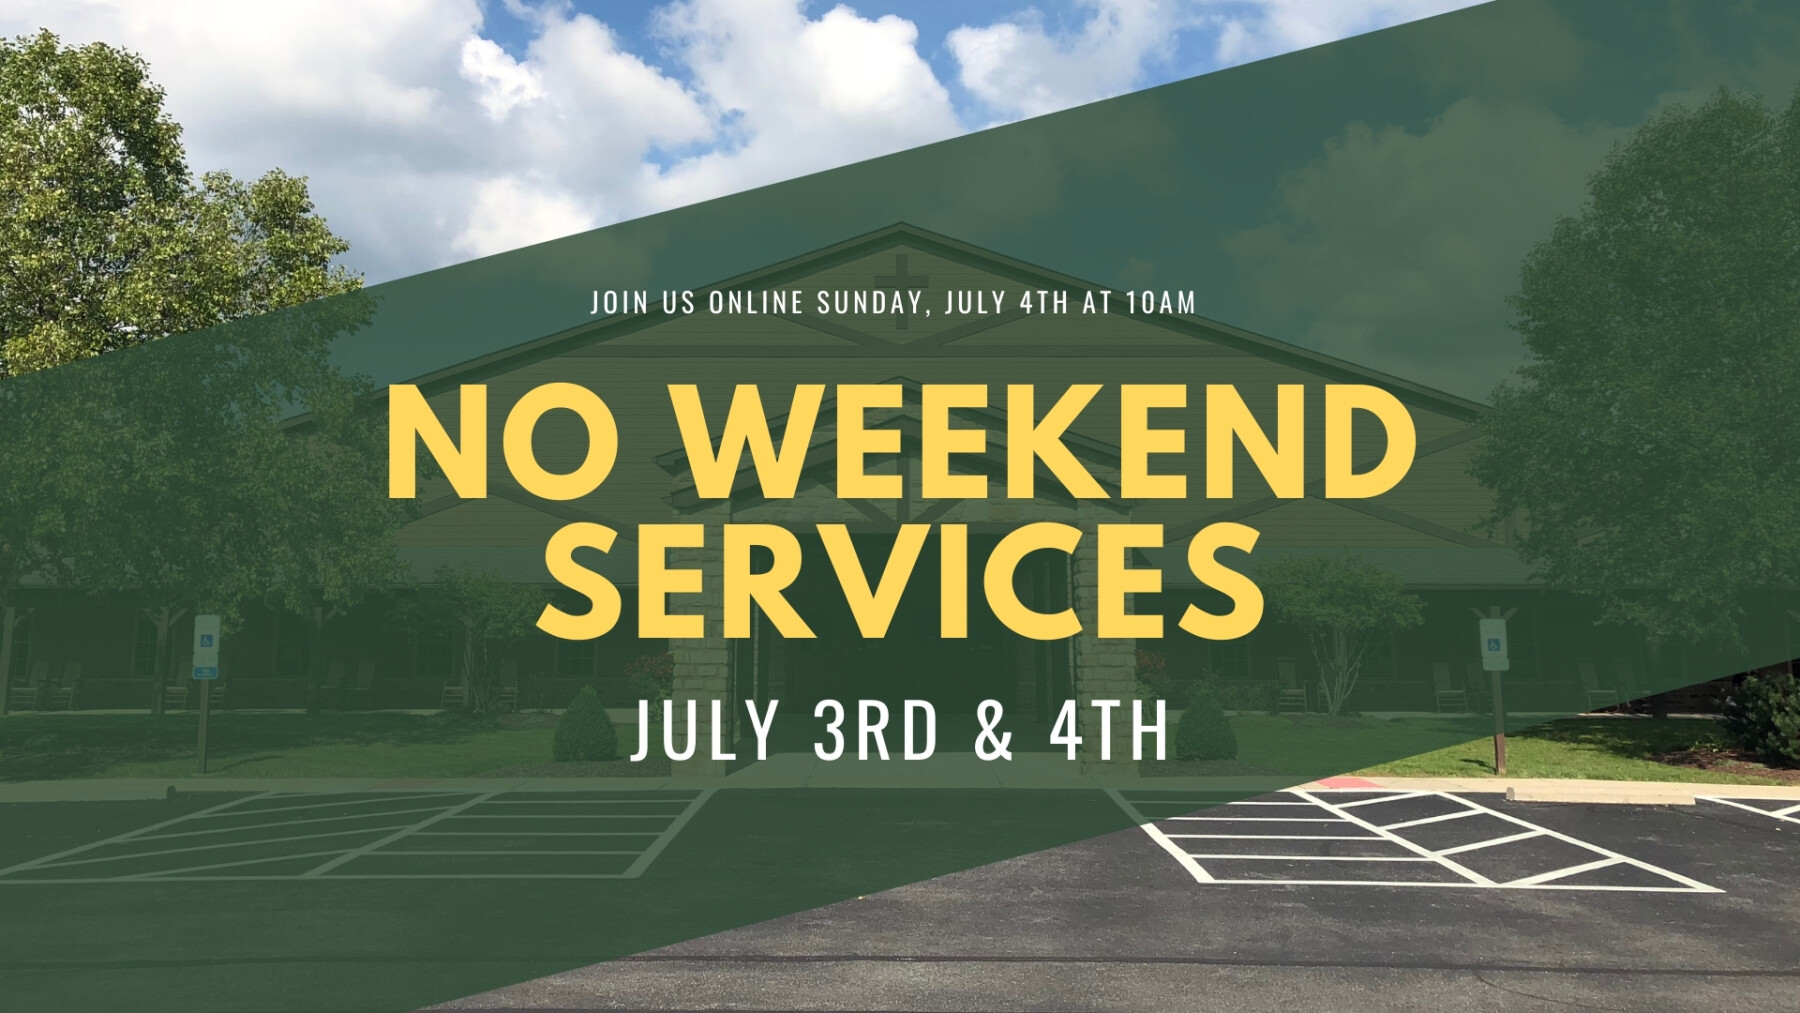 No In-Person Services July 3rd & 4th: Online Only